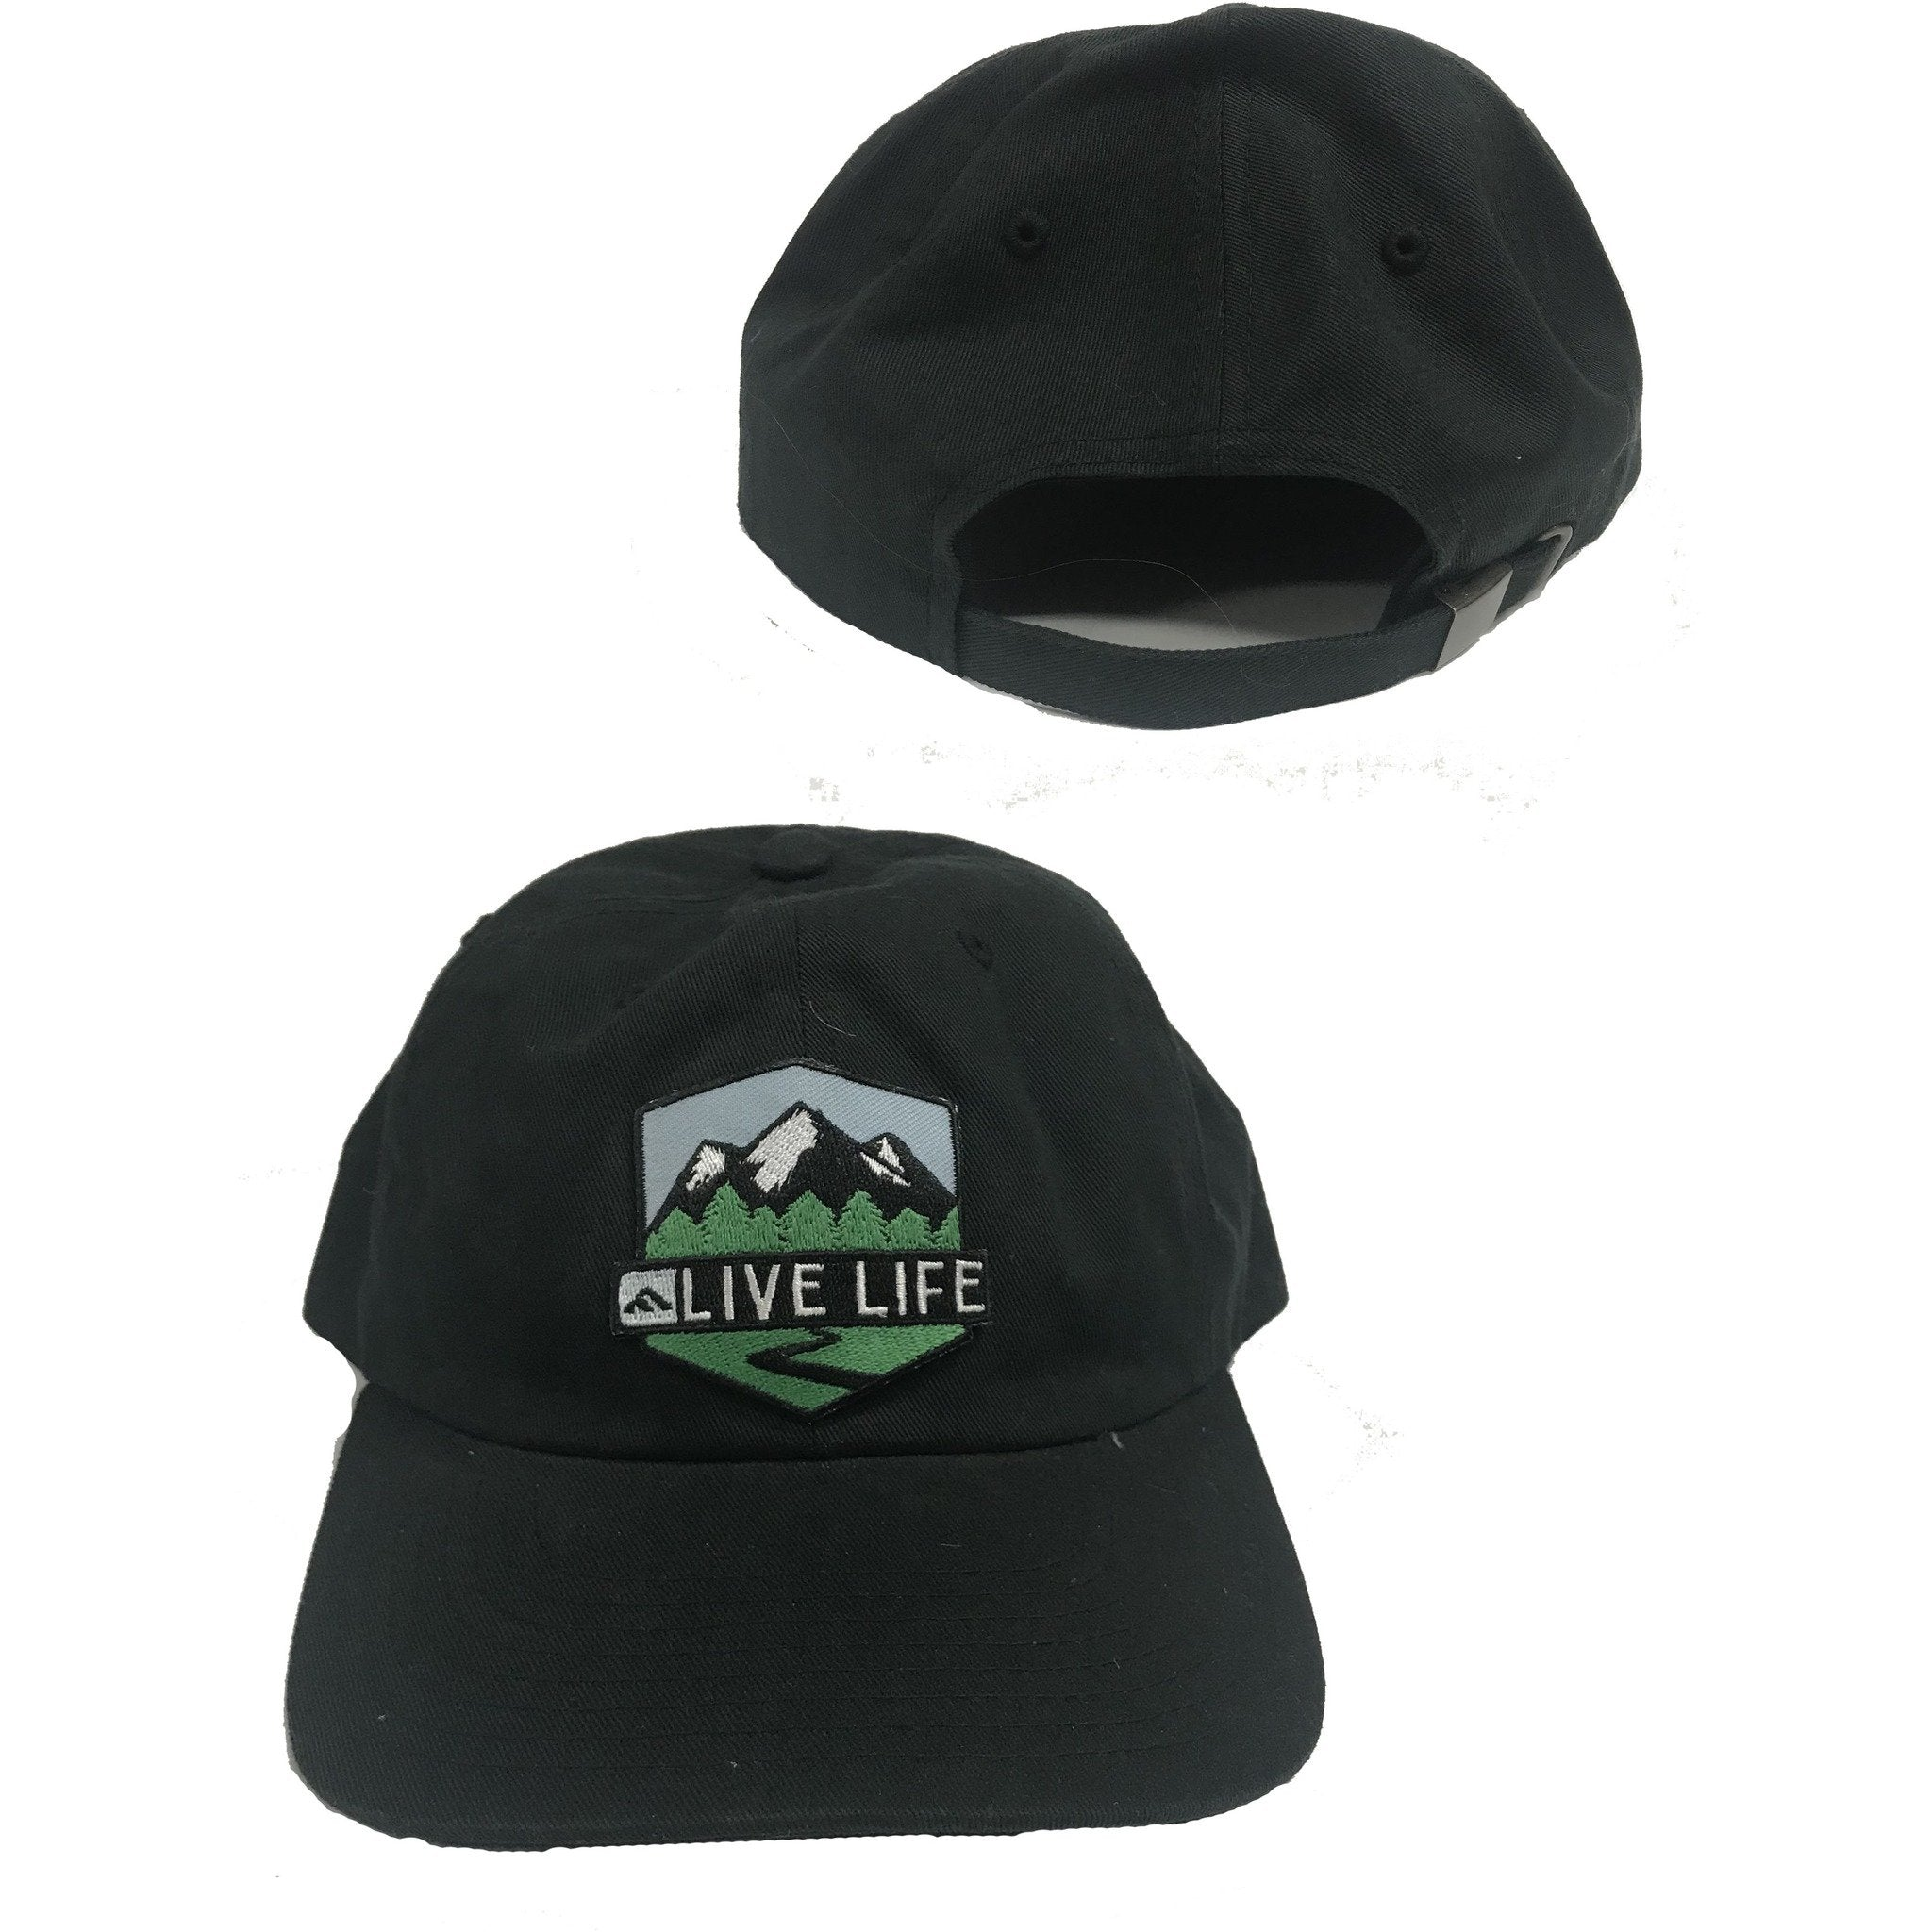 9e91058b Best sellers. Badge Life Dad Hat - Live Life Clothing Co